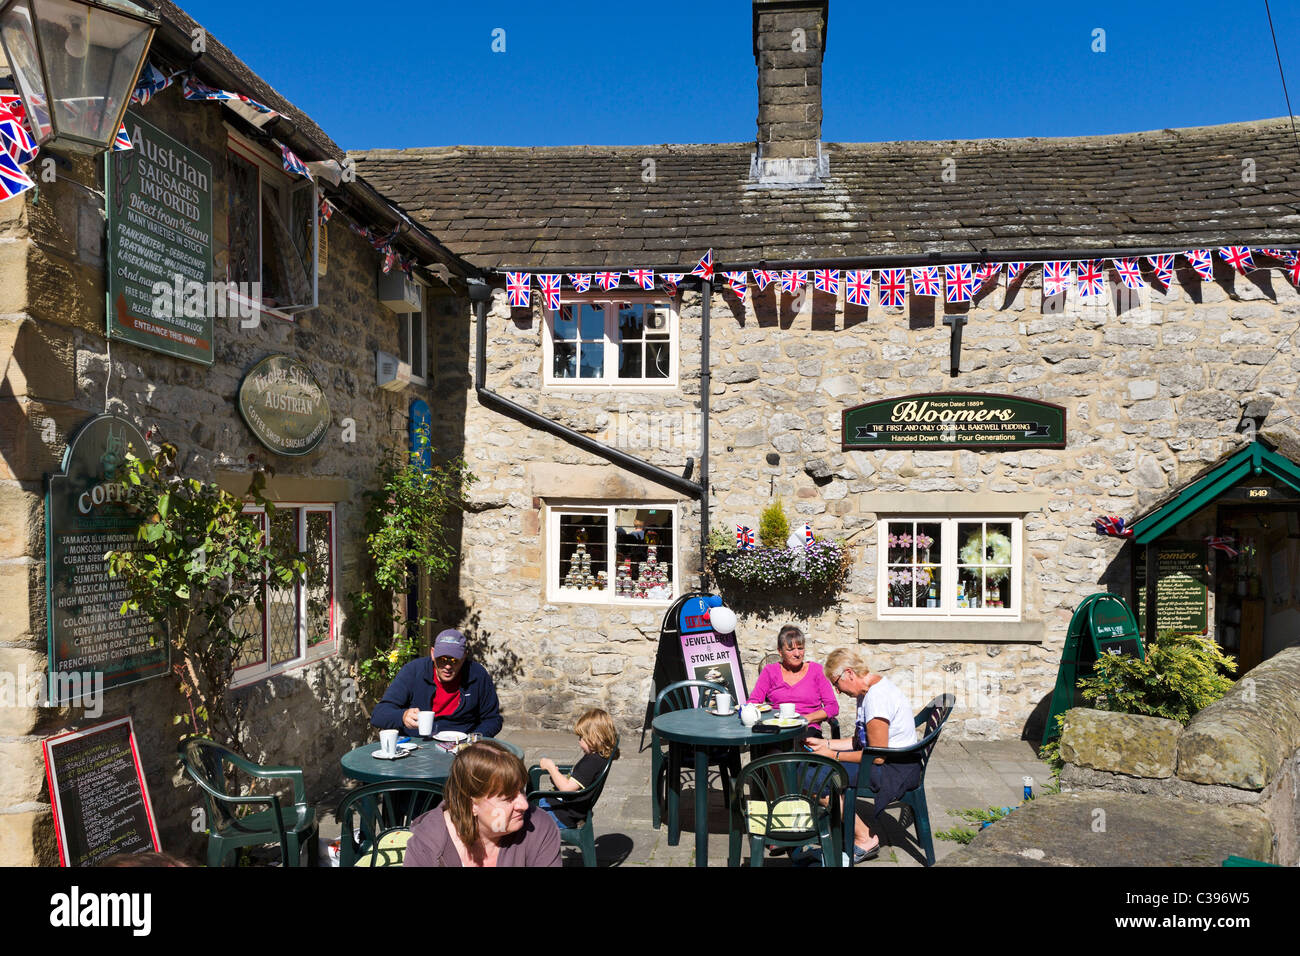 Cafe in the village centre on the weekend of the 2011 Royal Wedding, Bakewell, The Peak District, Derbyshire, UK - Stock Image